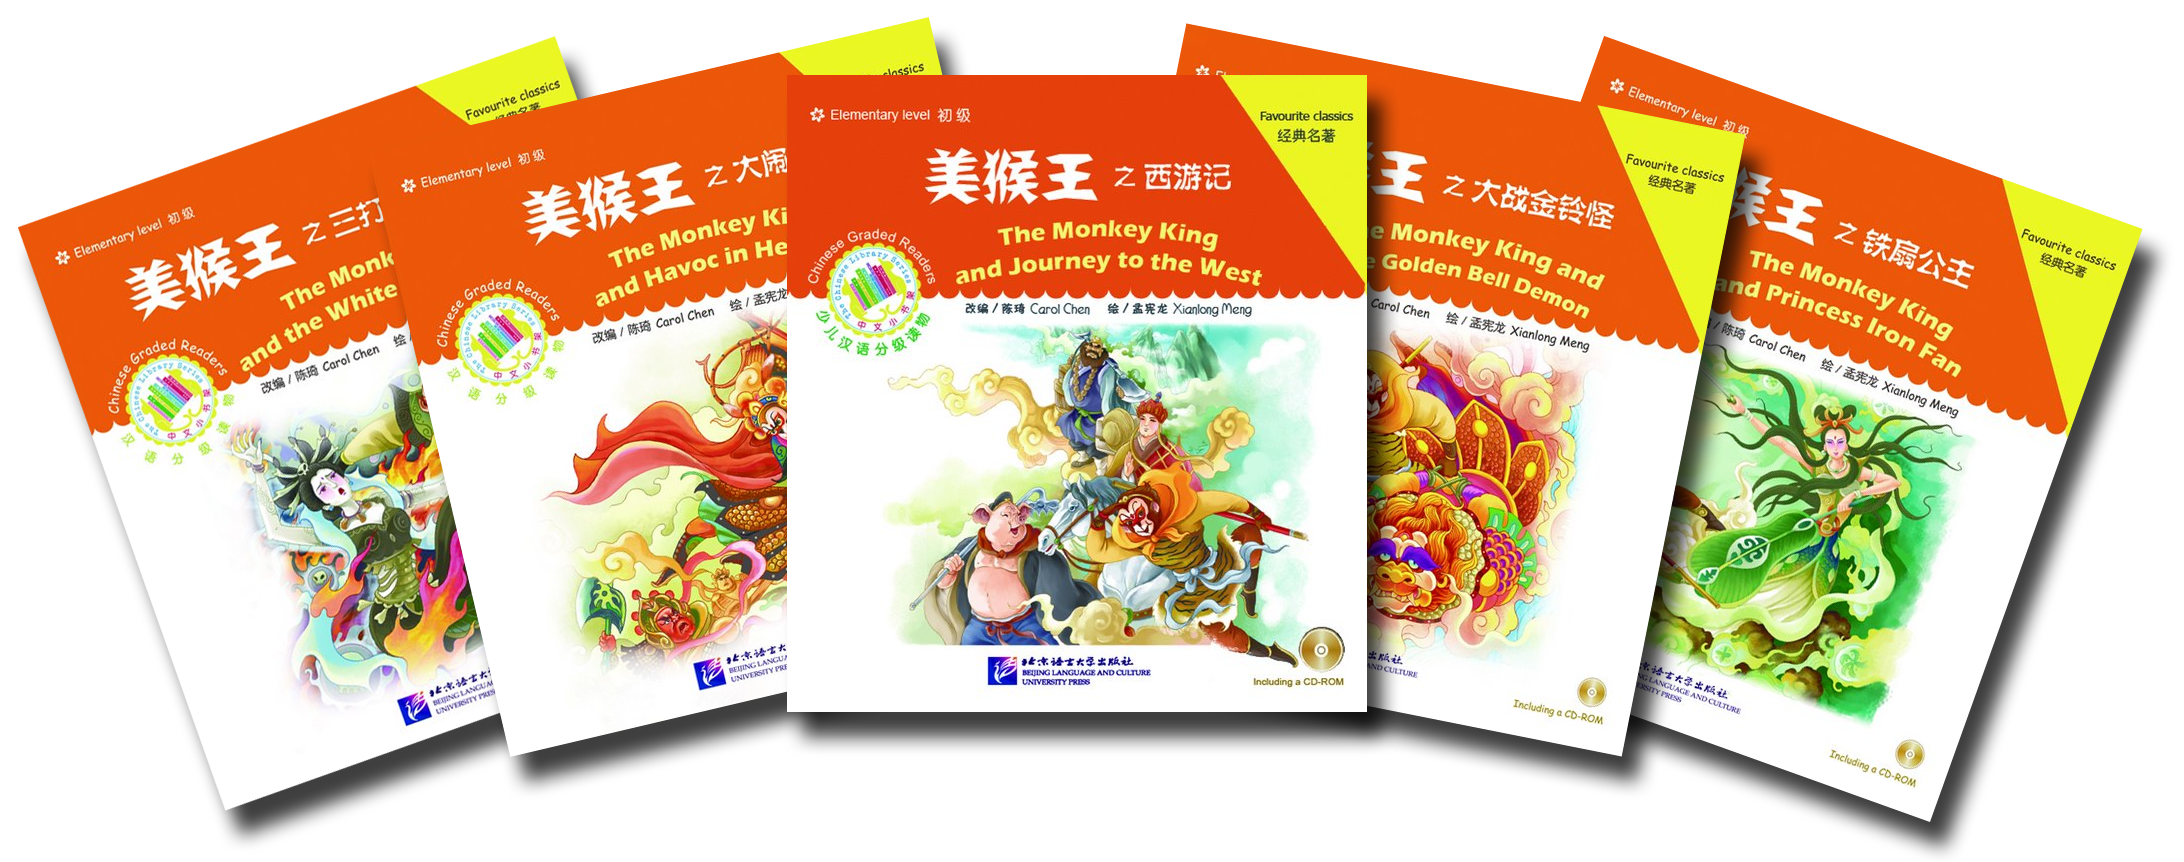 Monkey King book covers